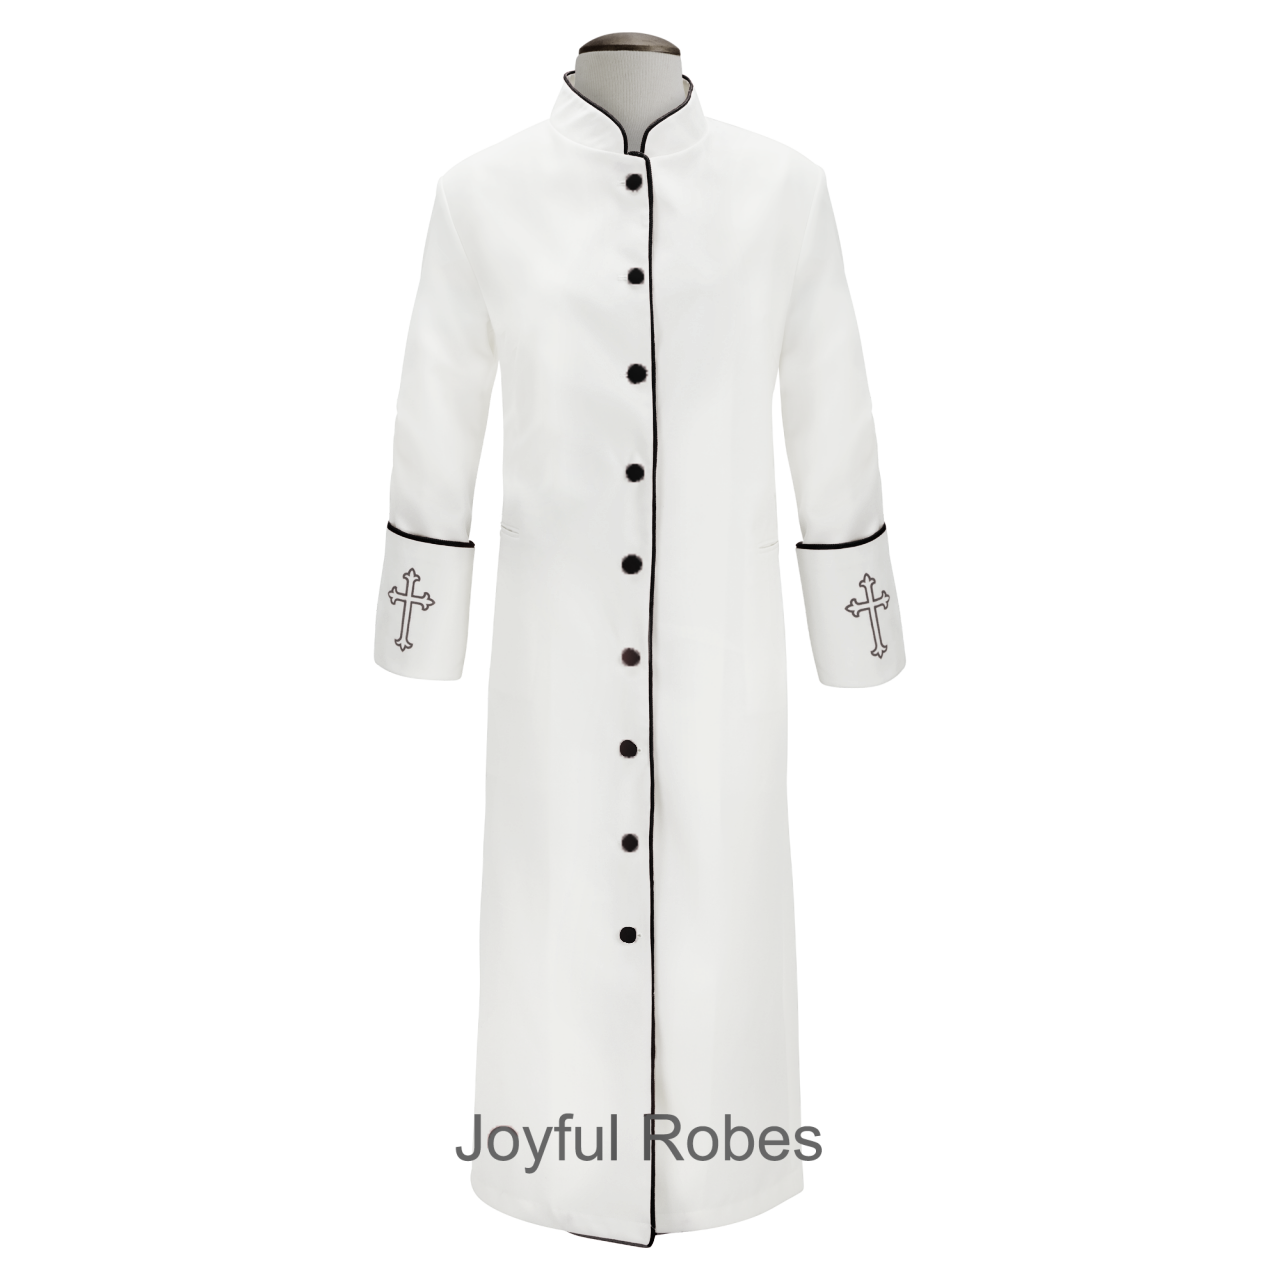 202 W. Women's Clergy/Pastor Robe - White/Black Design